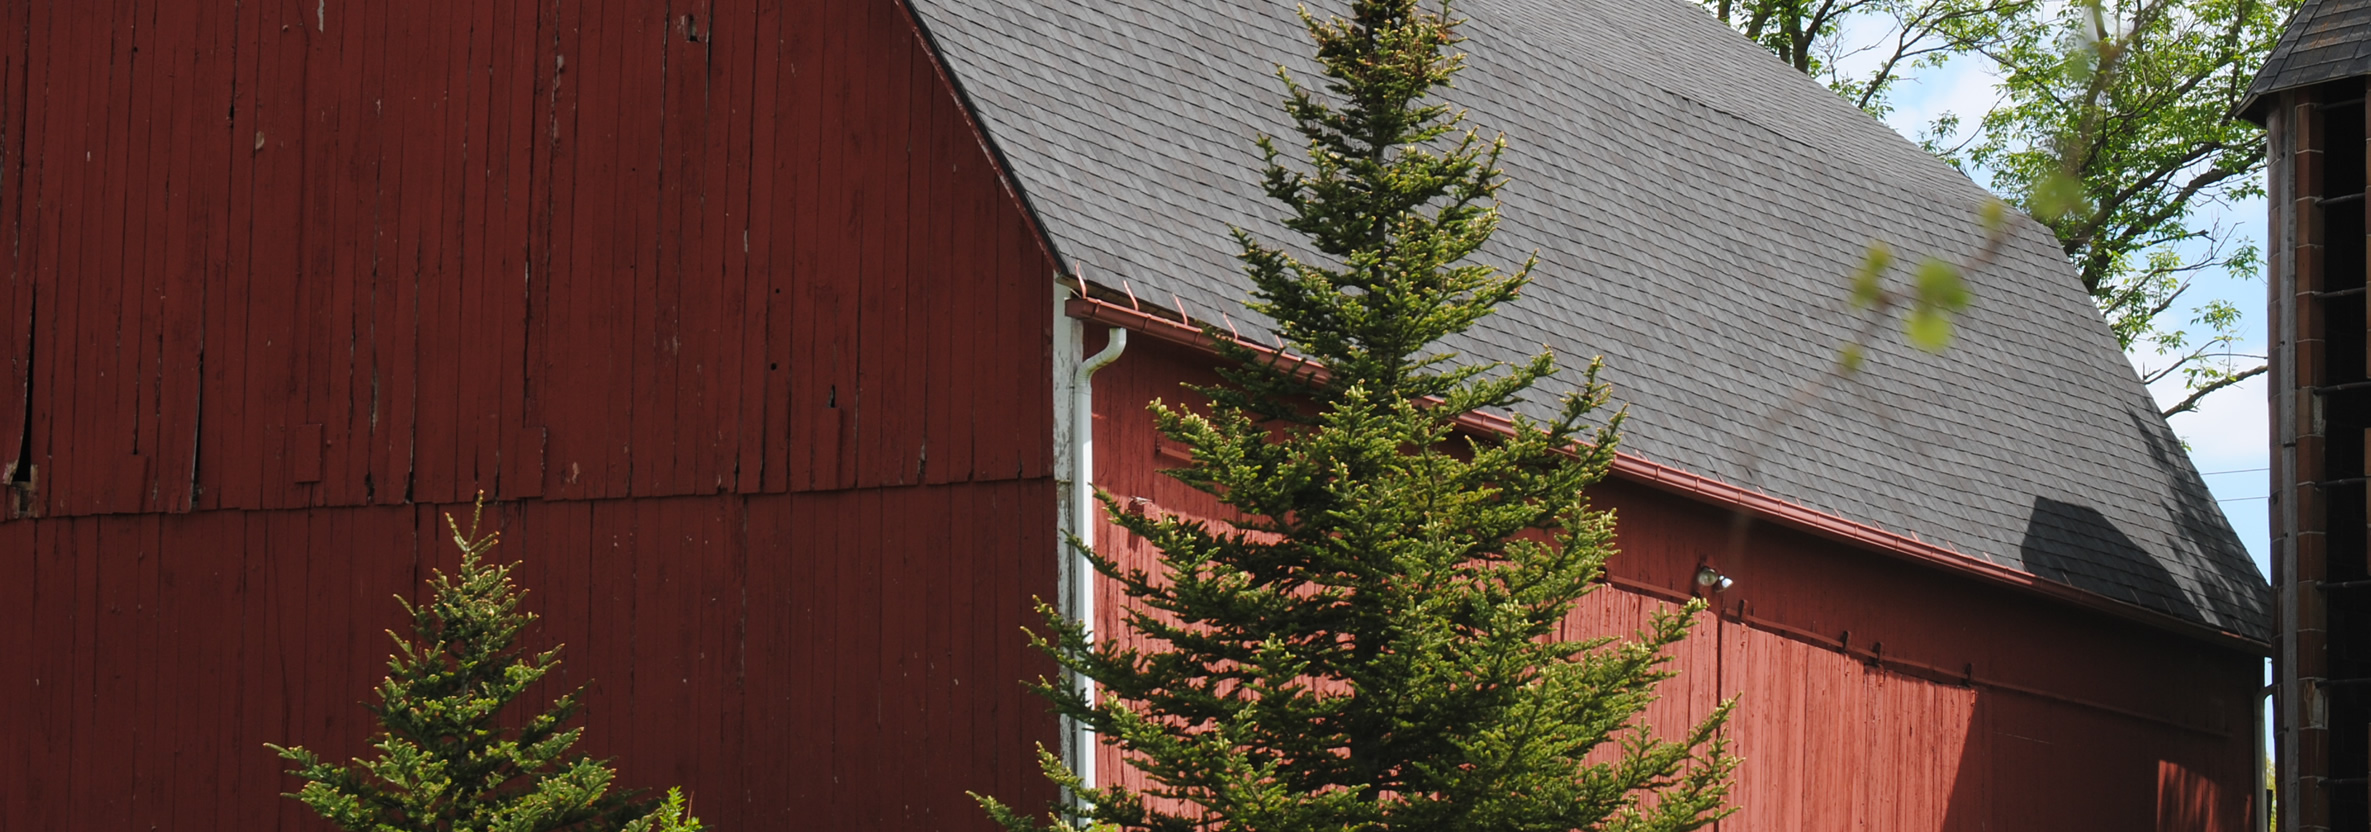 Highland Township Red Barn.jpg